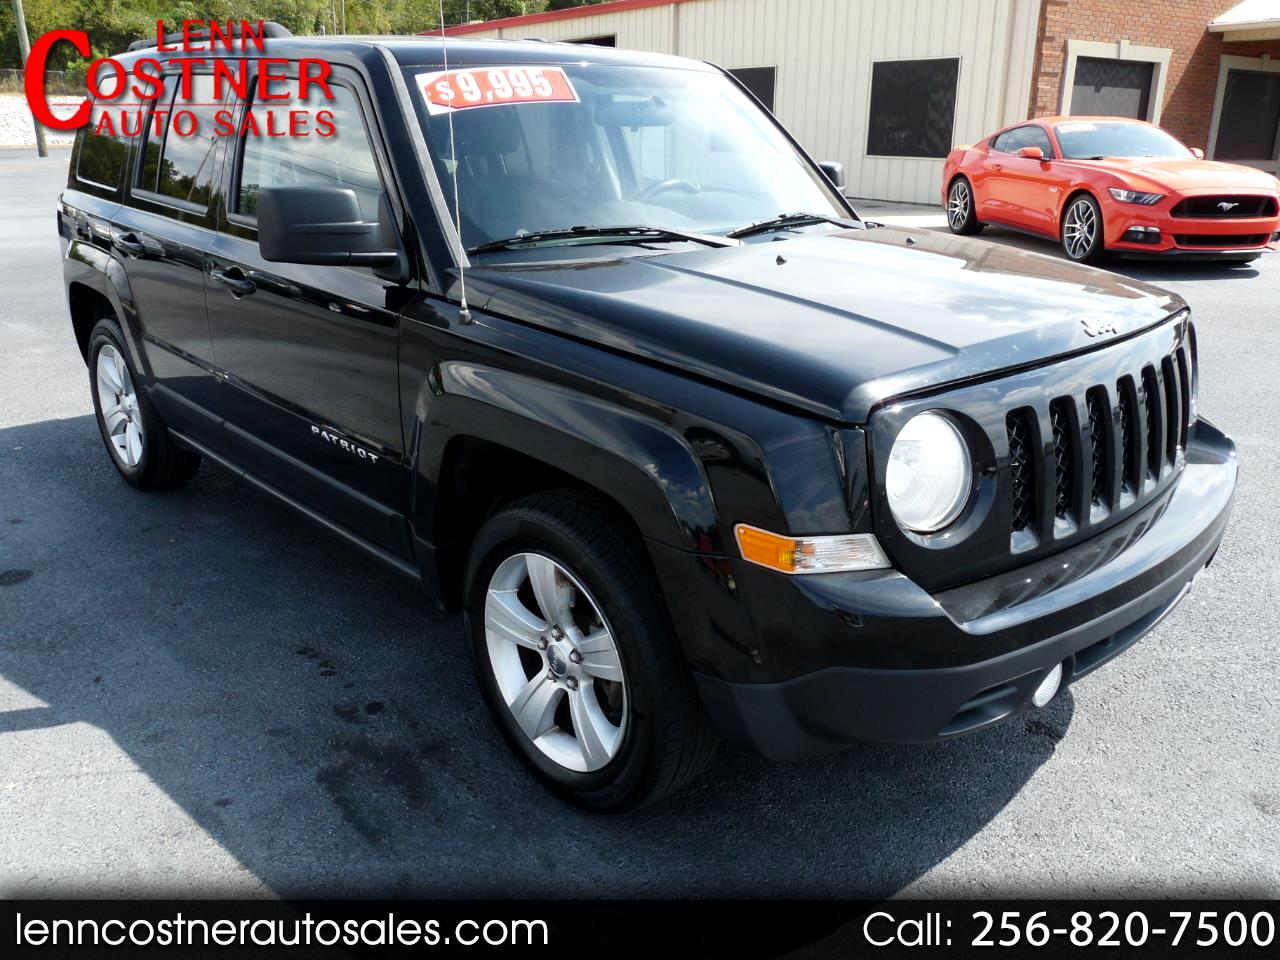 Jeep Patriot FWD 4dr Latitude 2013